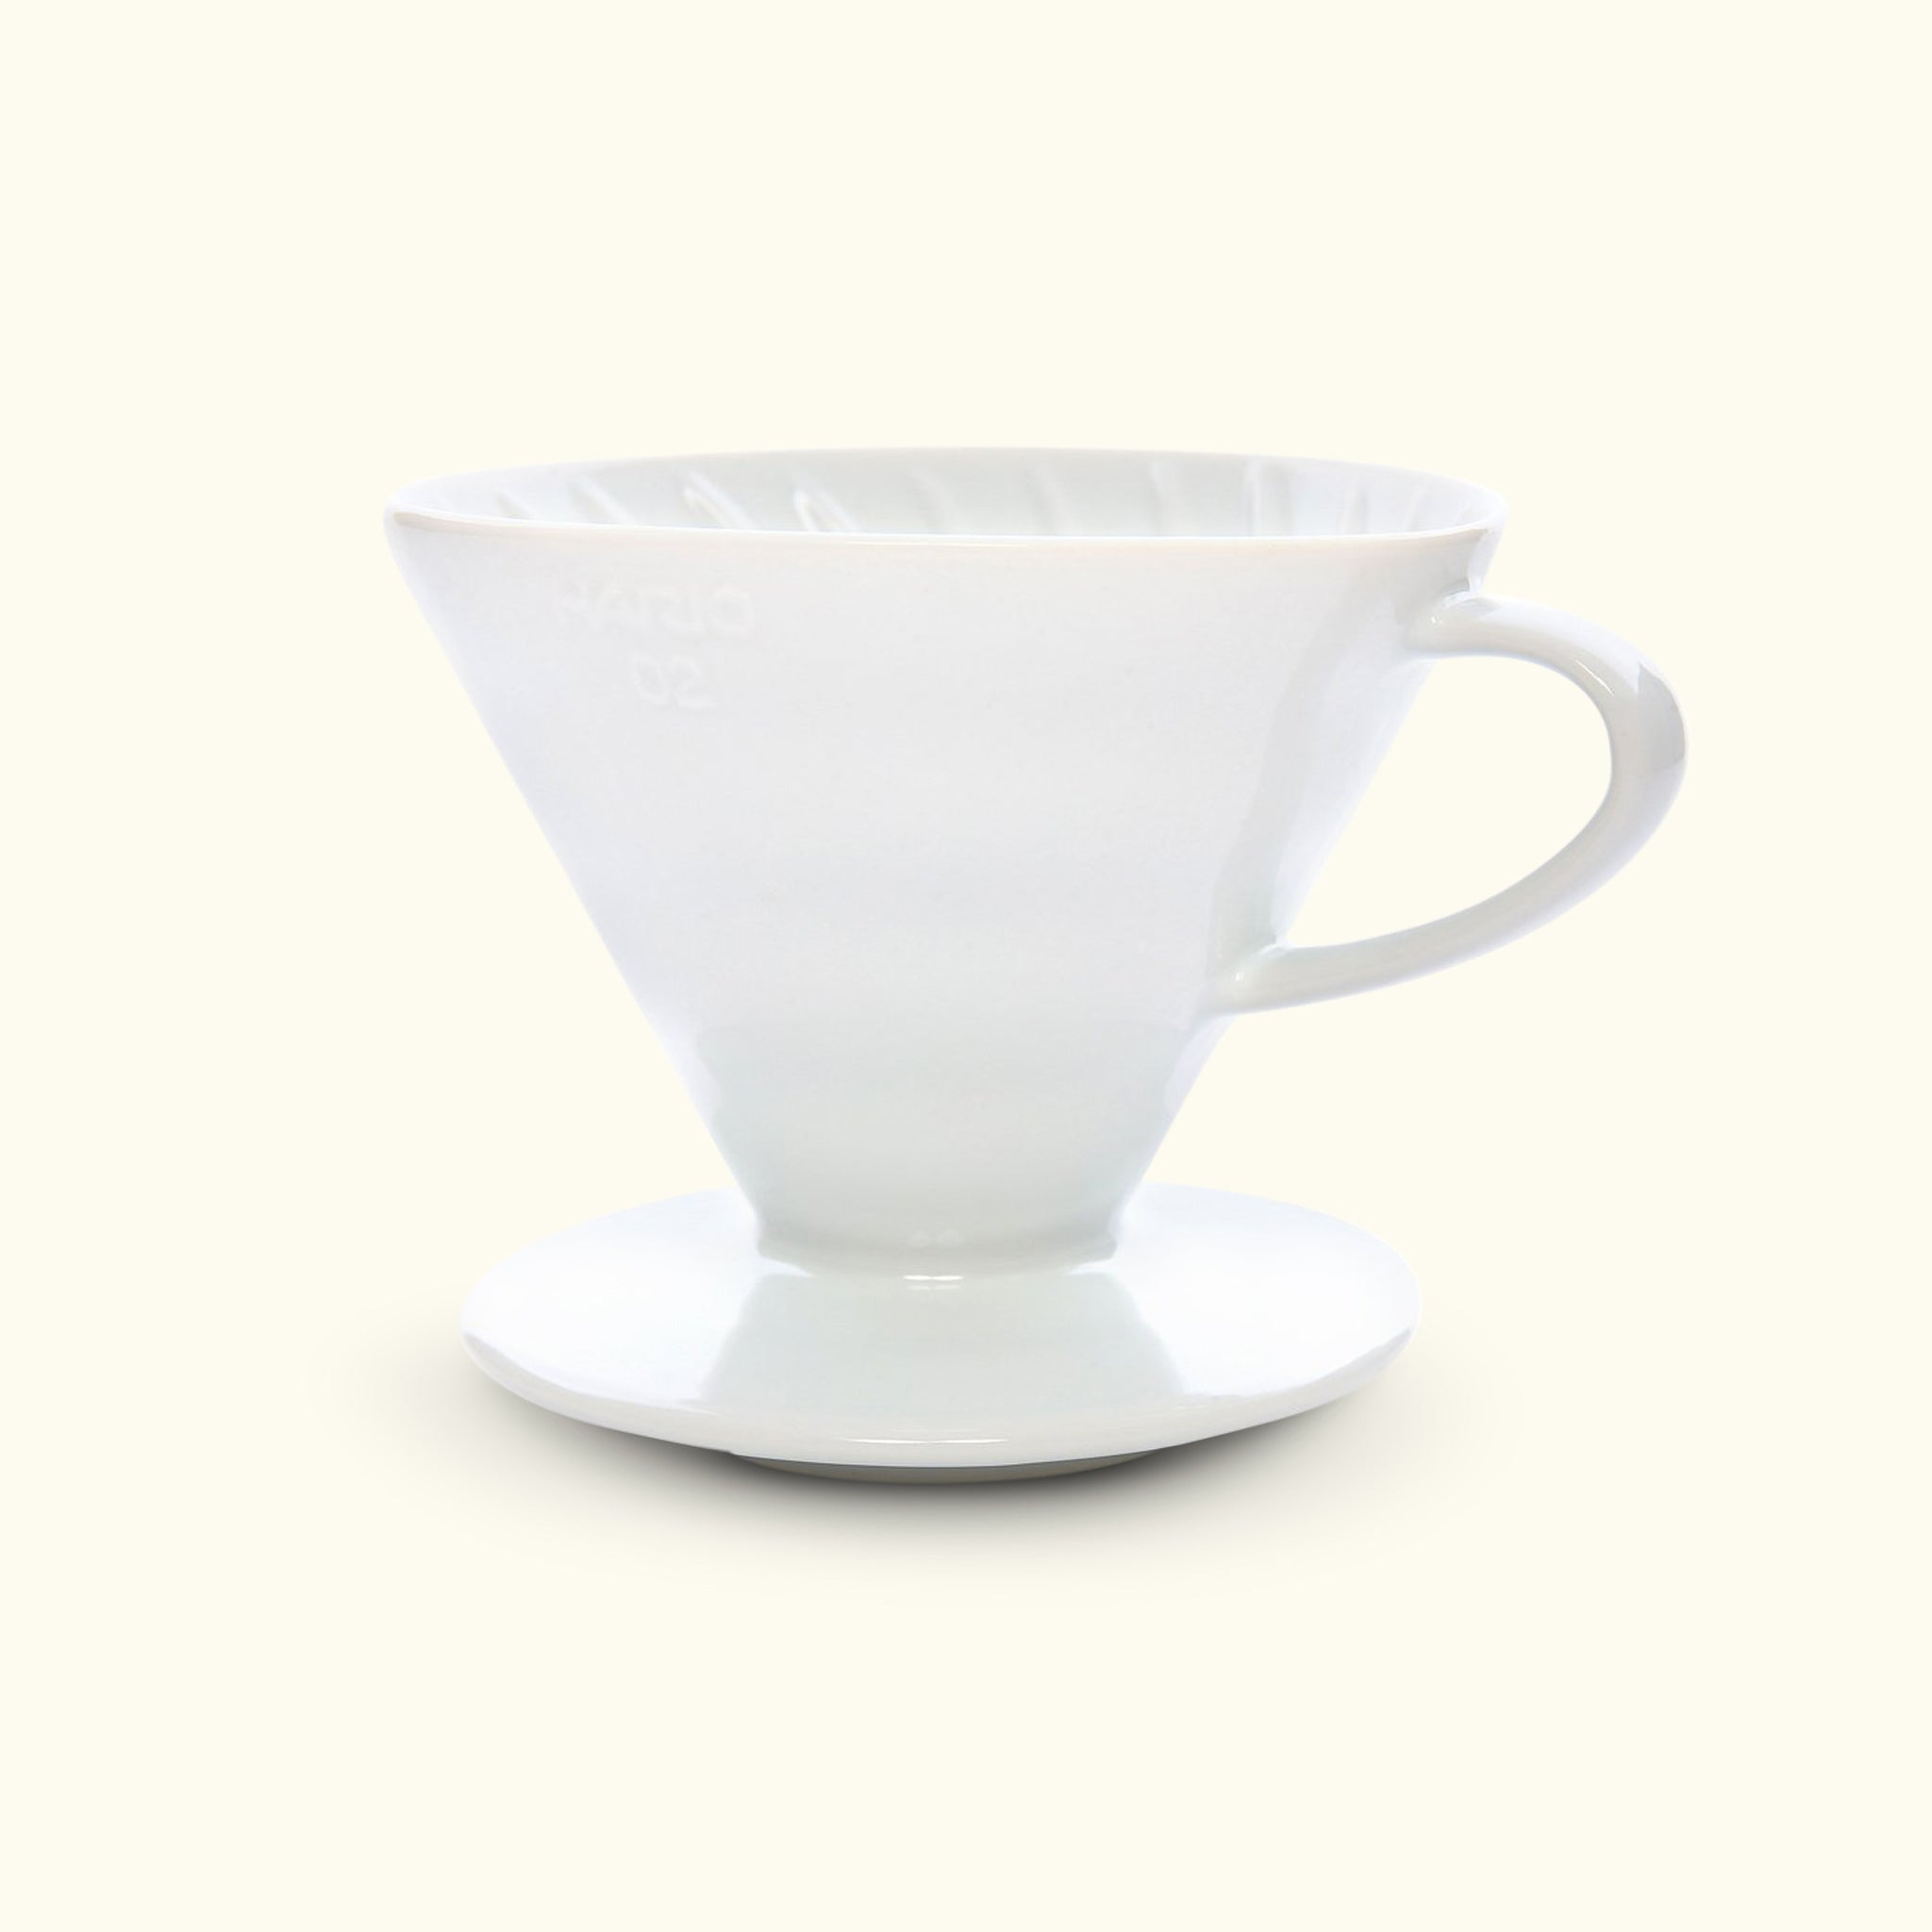 V60 Ceramic Coffee Dripper